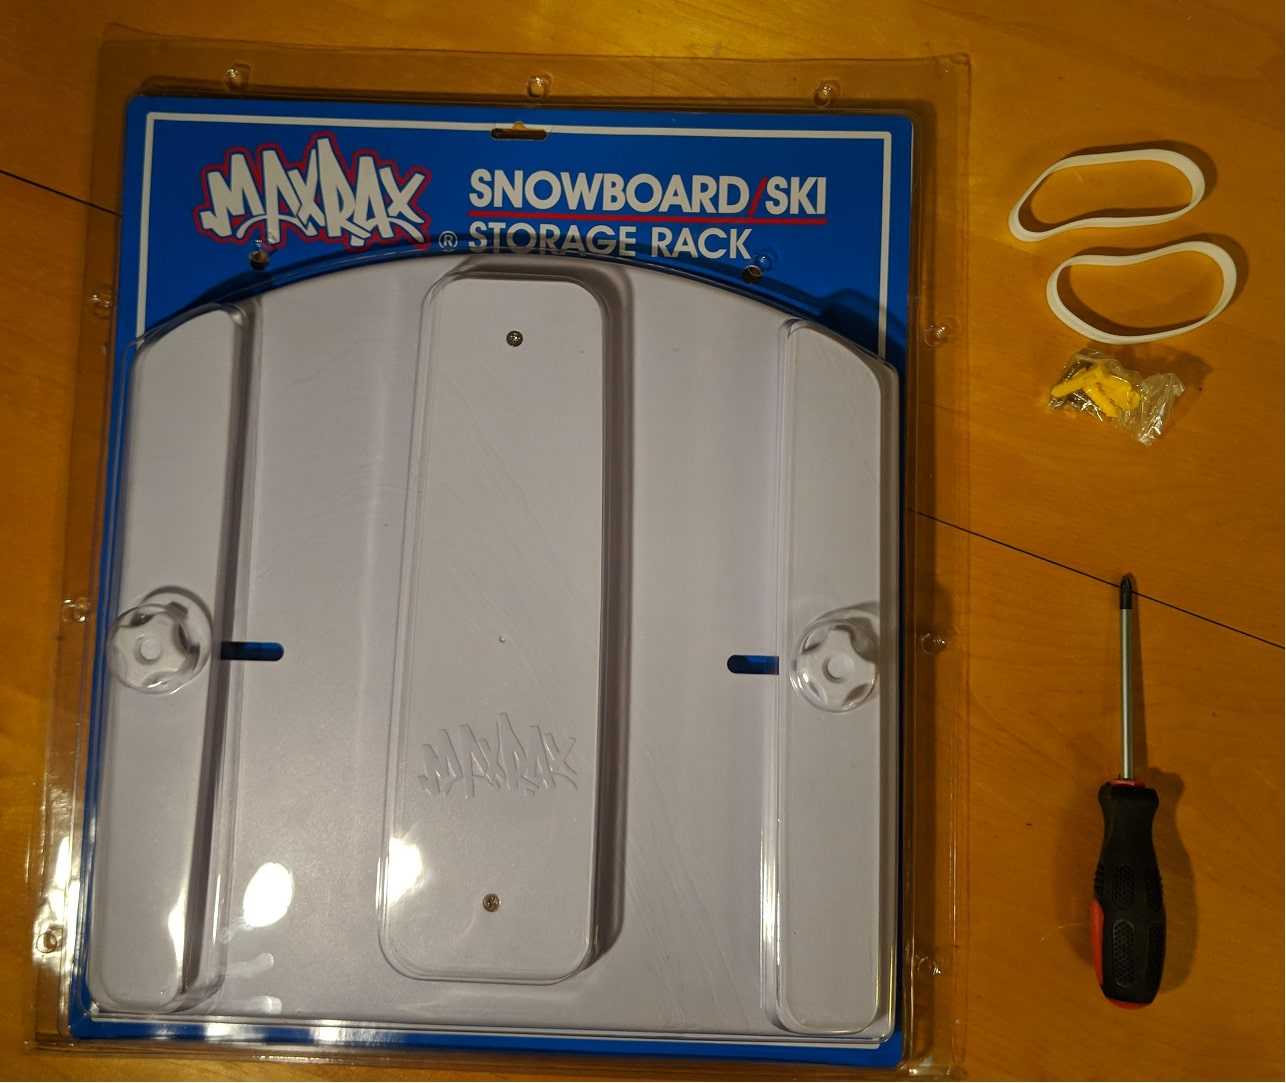 MaxRax Snowboard/Ski Storage Rack Parts Included